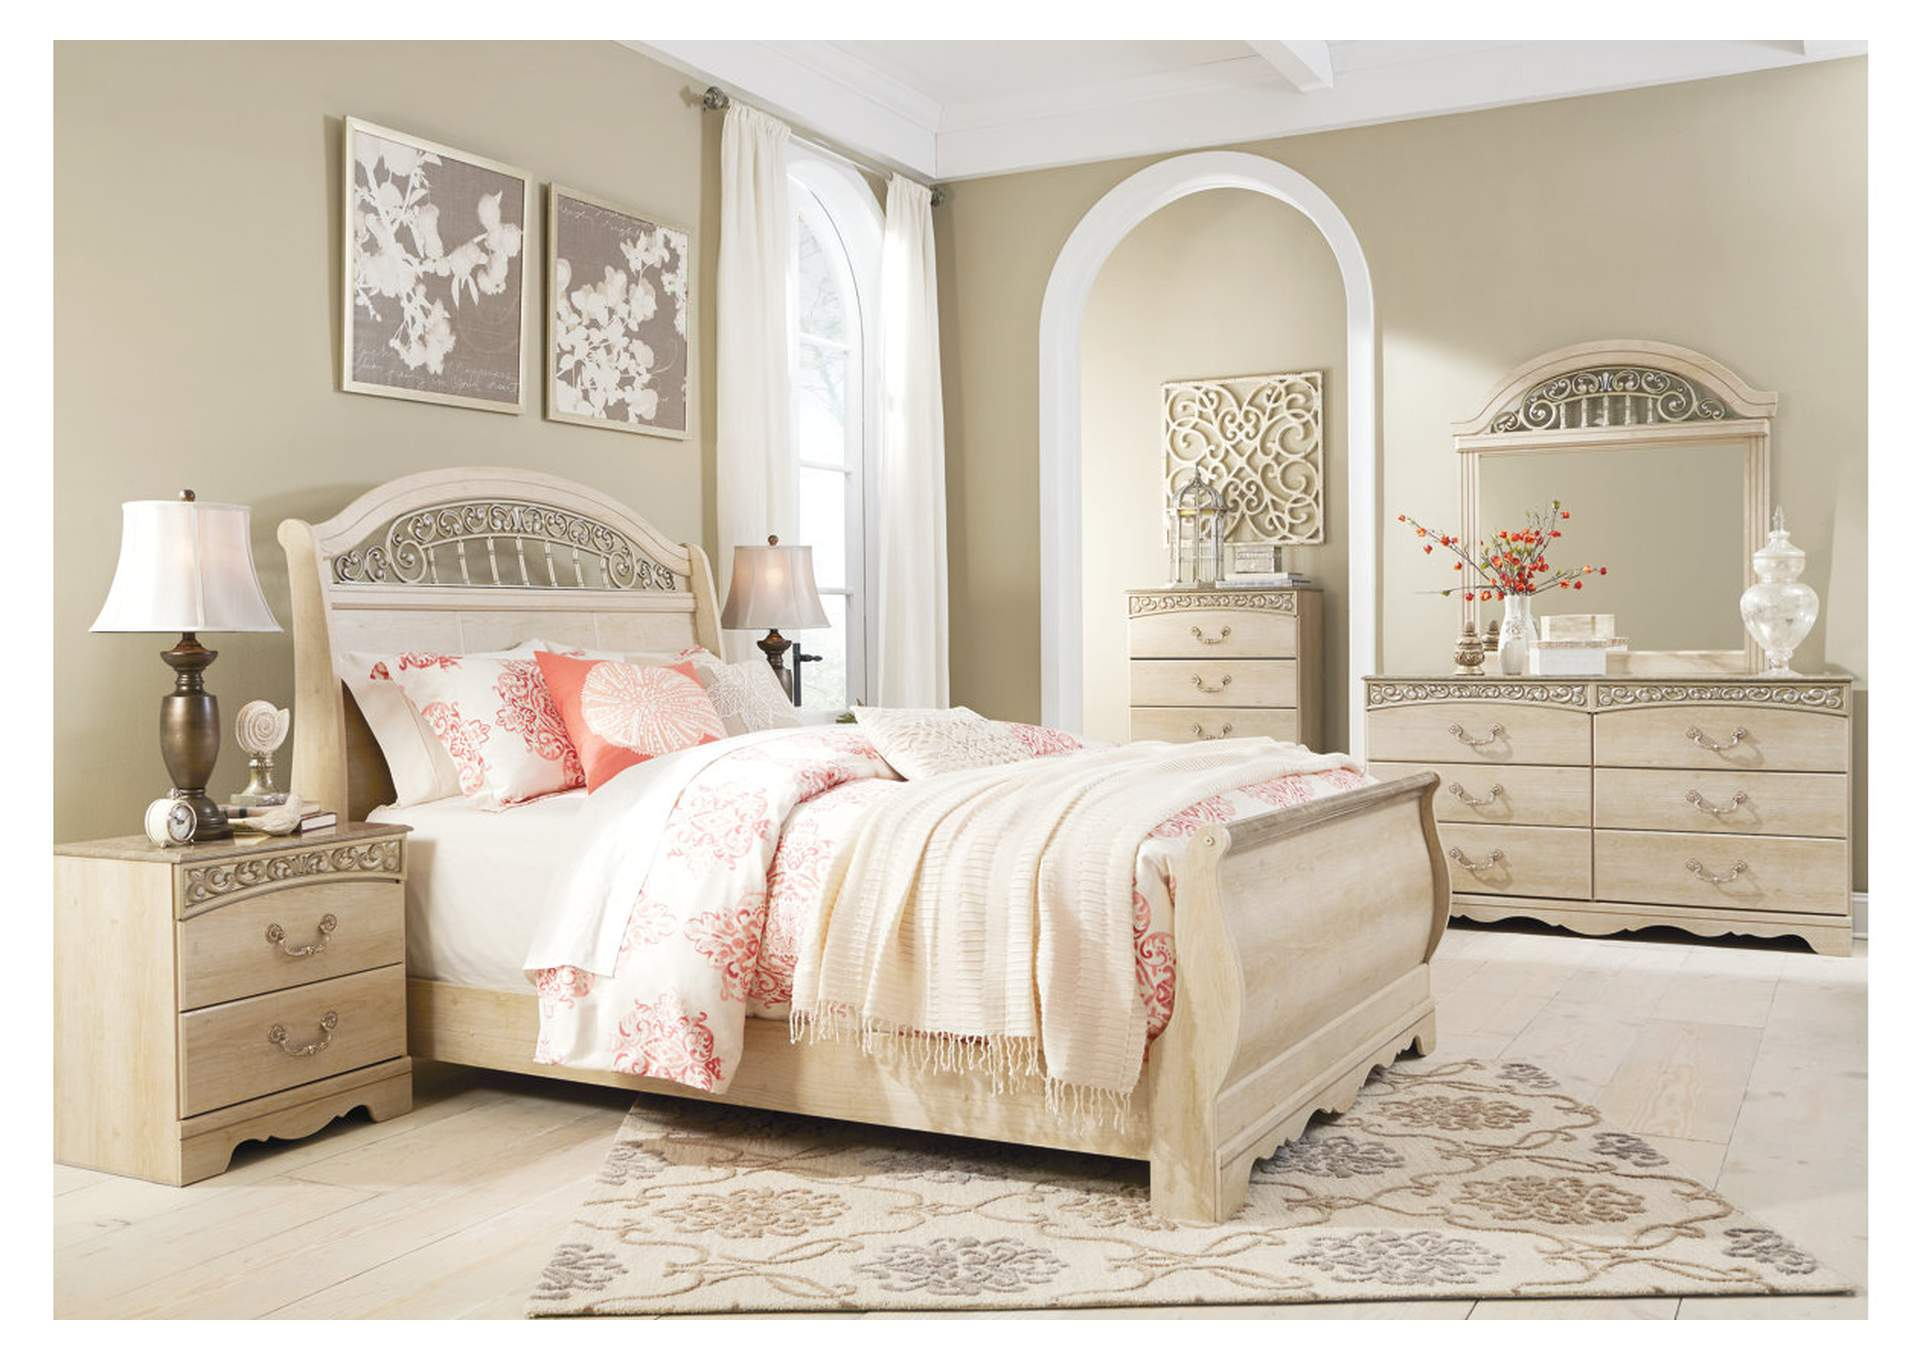 Catalina Antique White Queen Sleigh Bed w/Dresser, Mirror, & Nightstand,Signature Design By Ashley